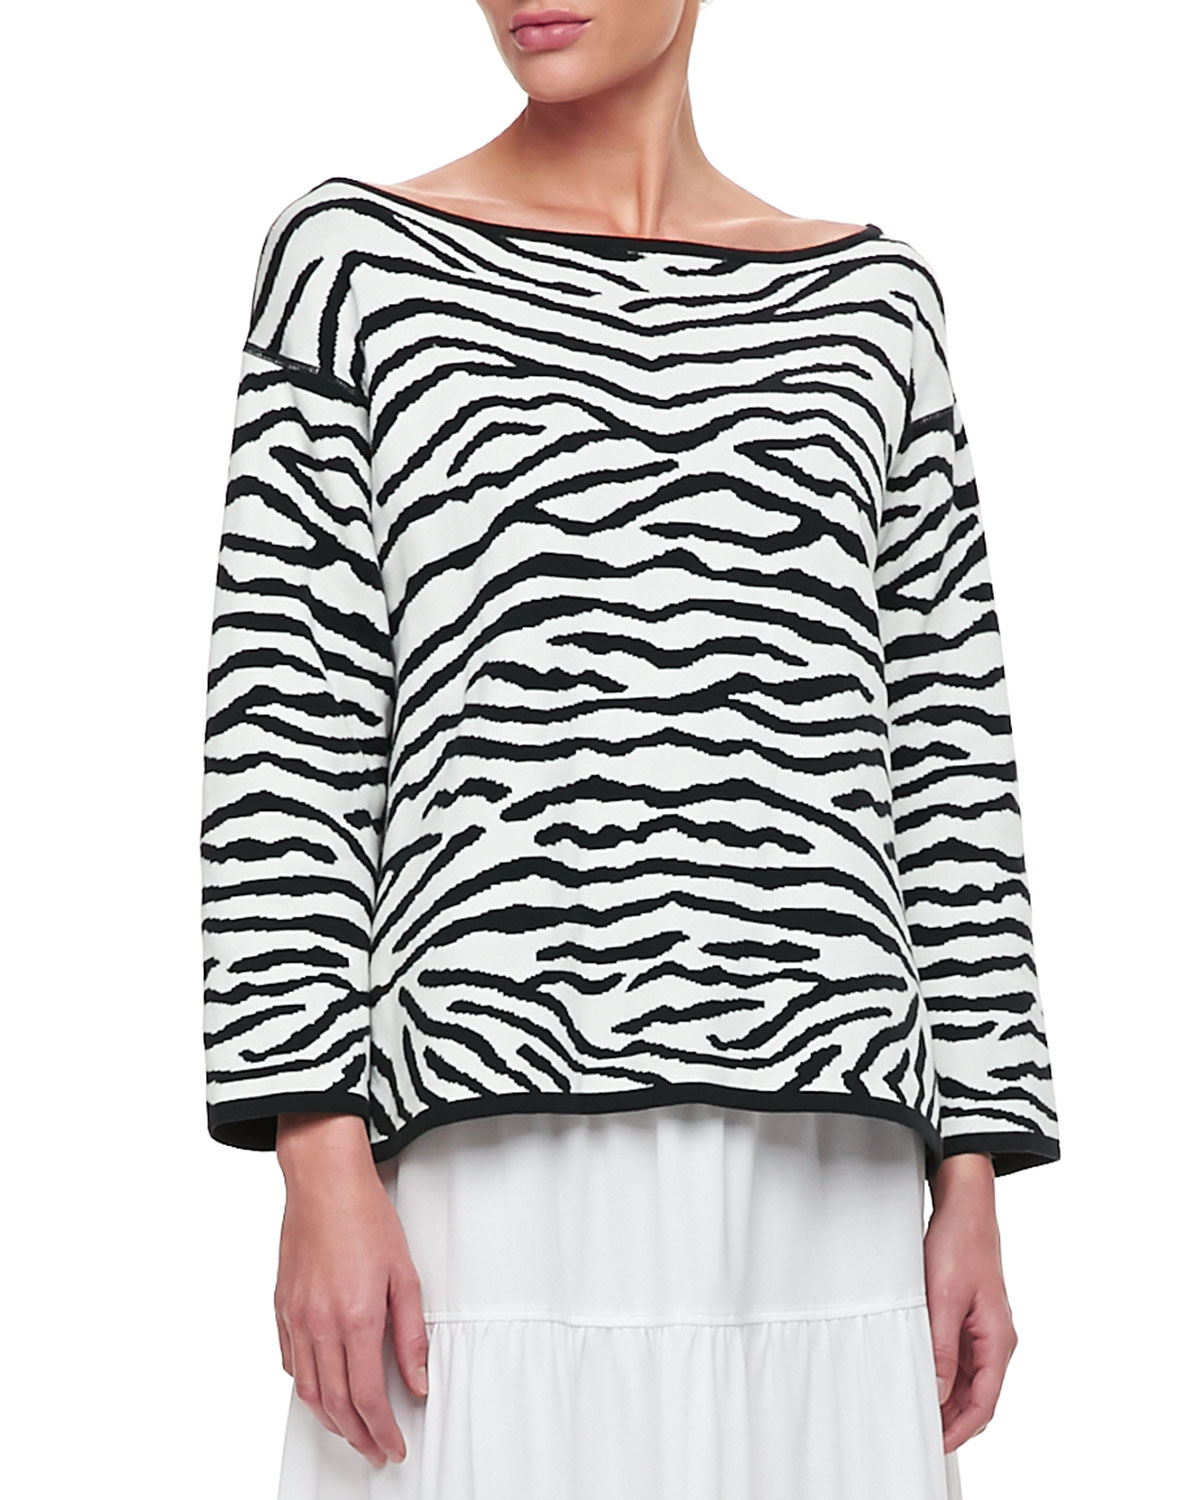 Reversible Animal Print Pullover Sweater